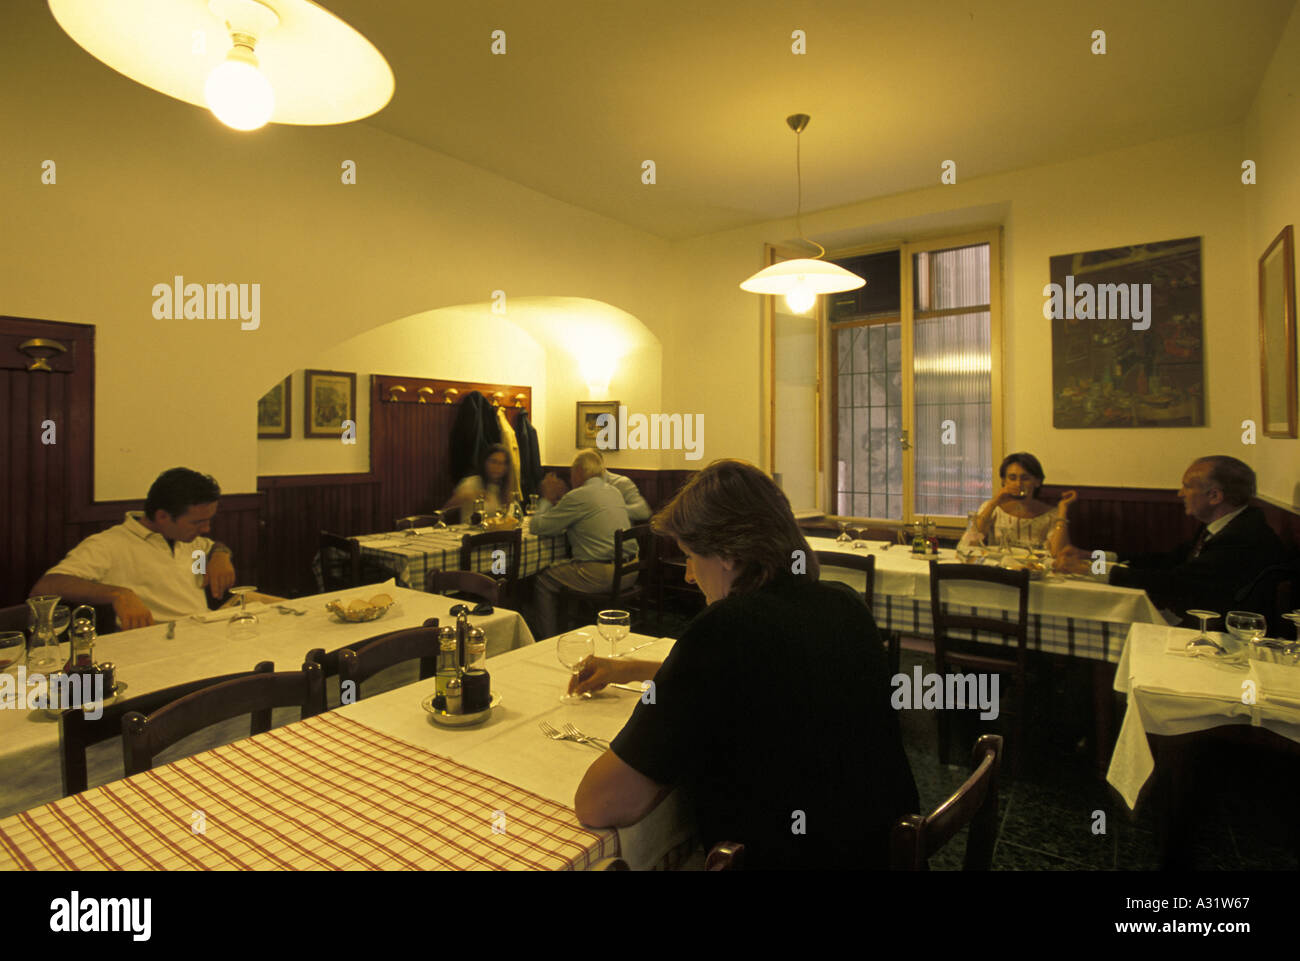 Ristorante Bianchi Brescia Bianchi Stock Photos And Bianchi Stock Images Alamy